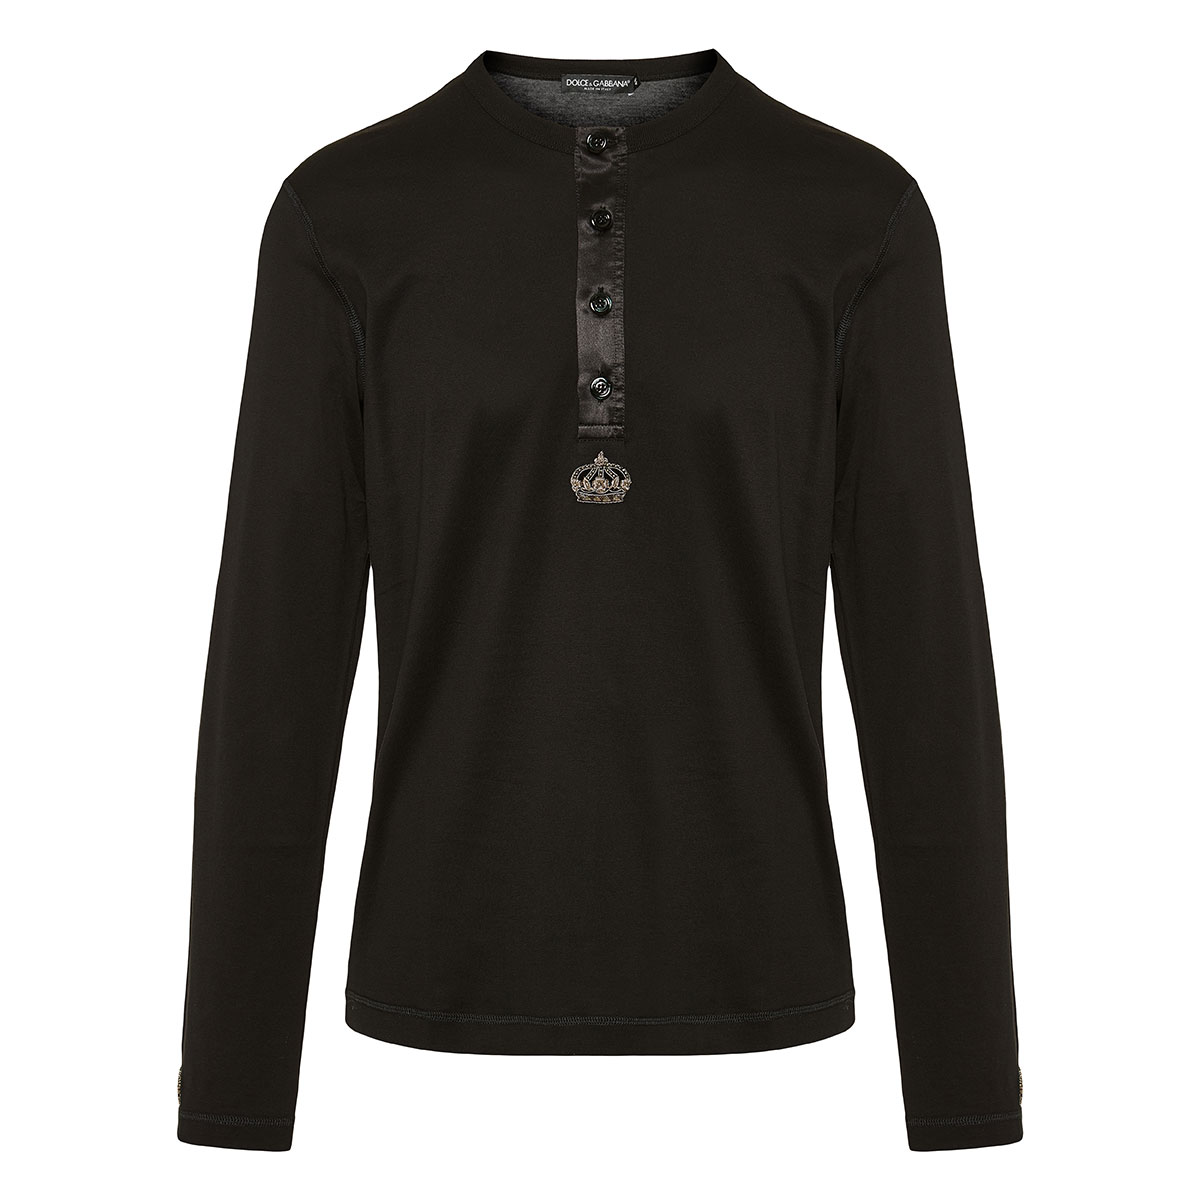 Jersey blouse with crown patch